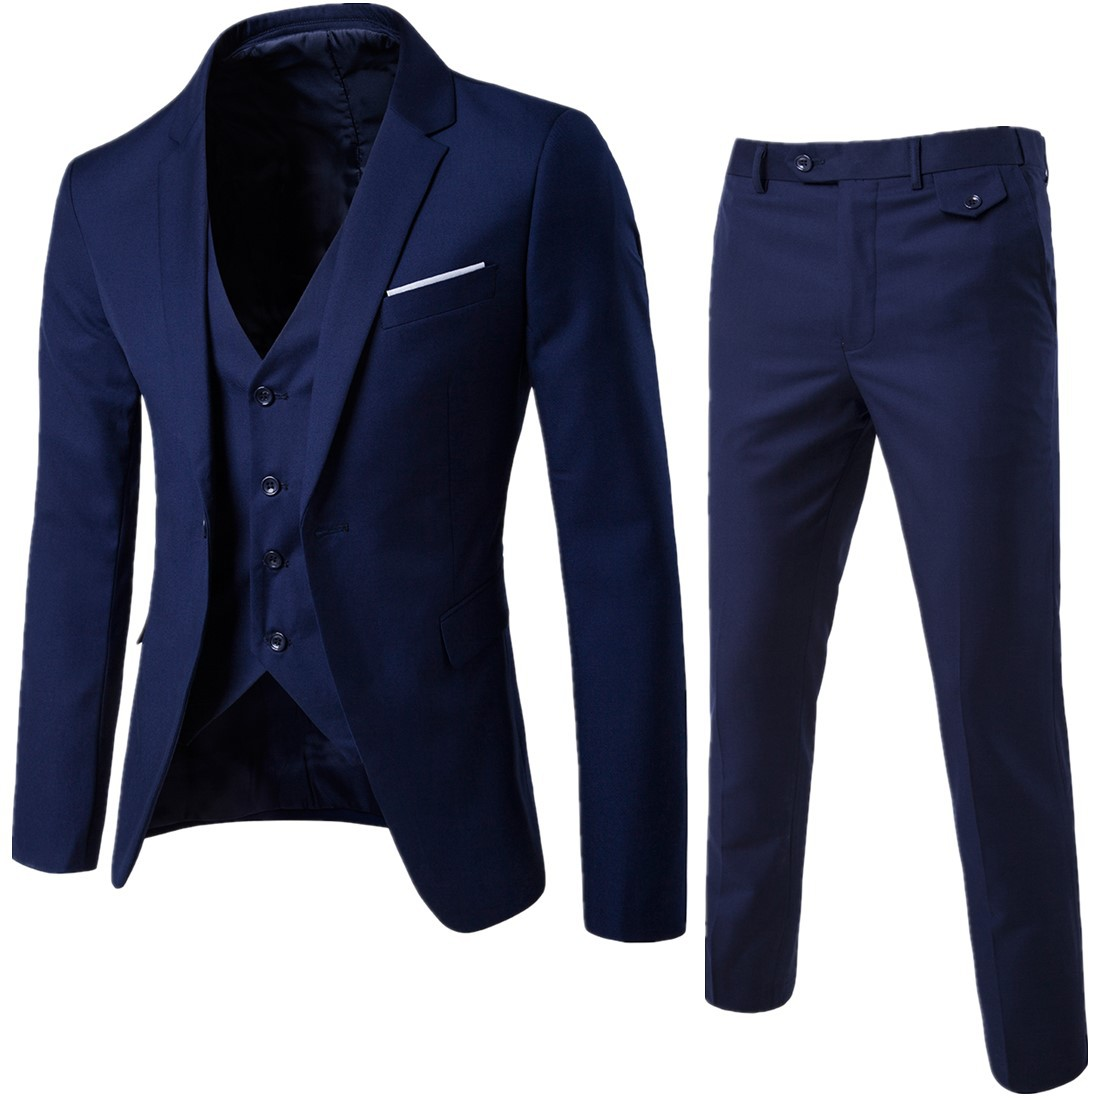 Suit Men Three-piece Set Business Formal Wear Business Small Suit Slim Fit Korean-style Best Man Groom Marriage Ceremony